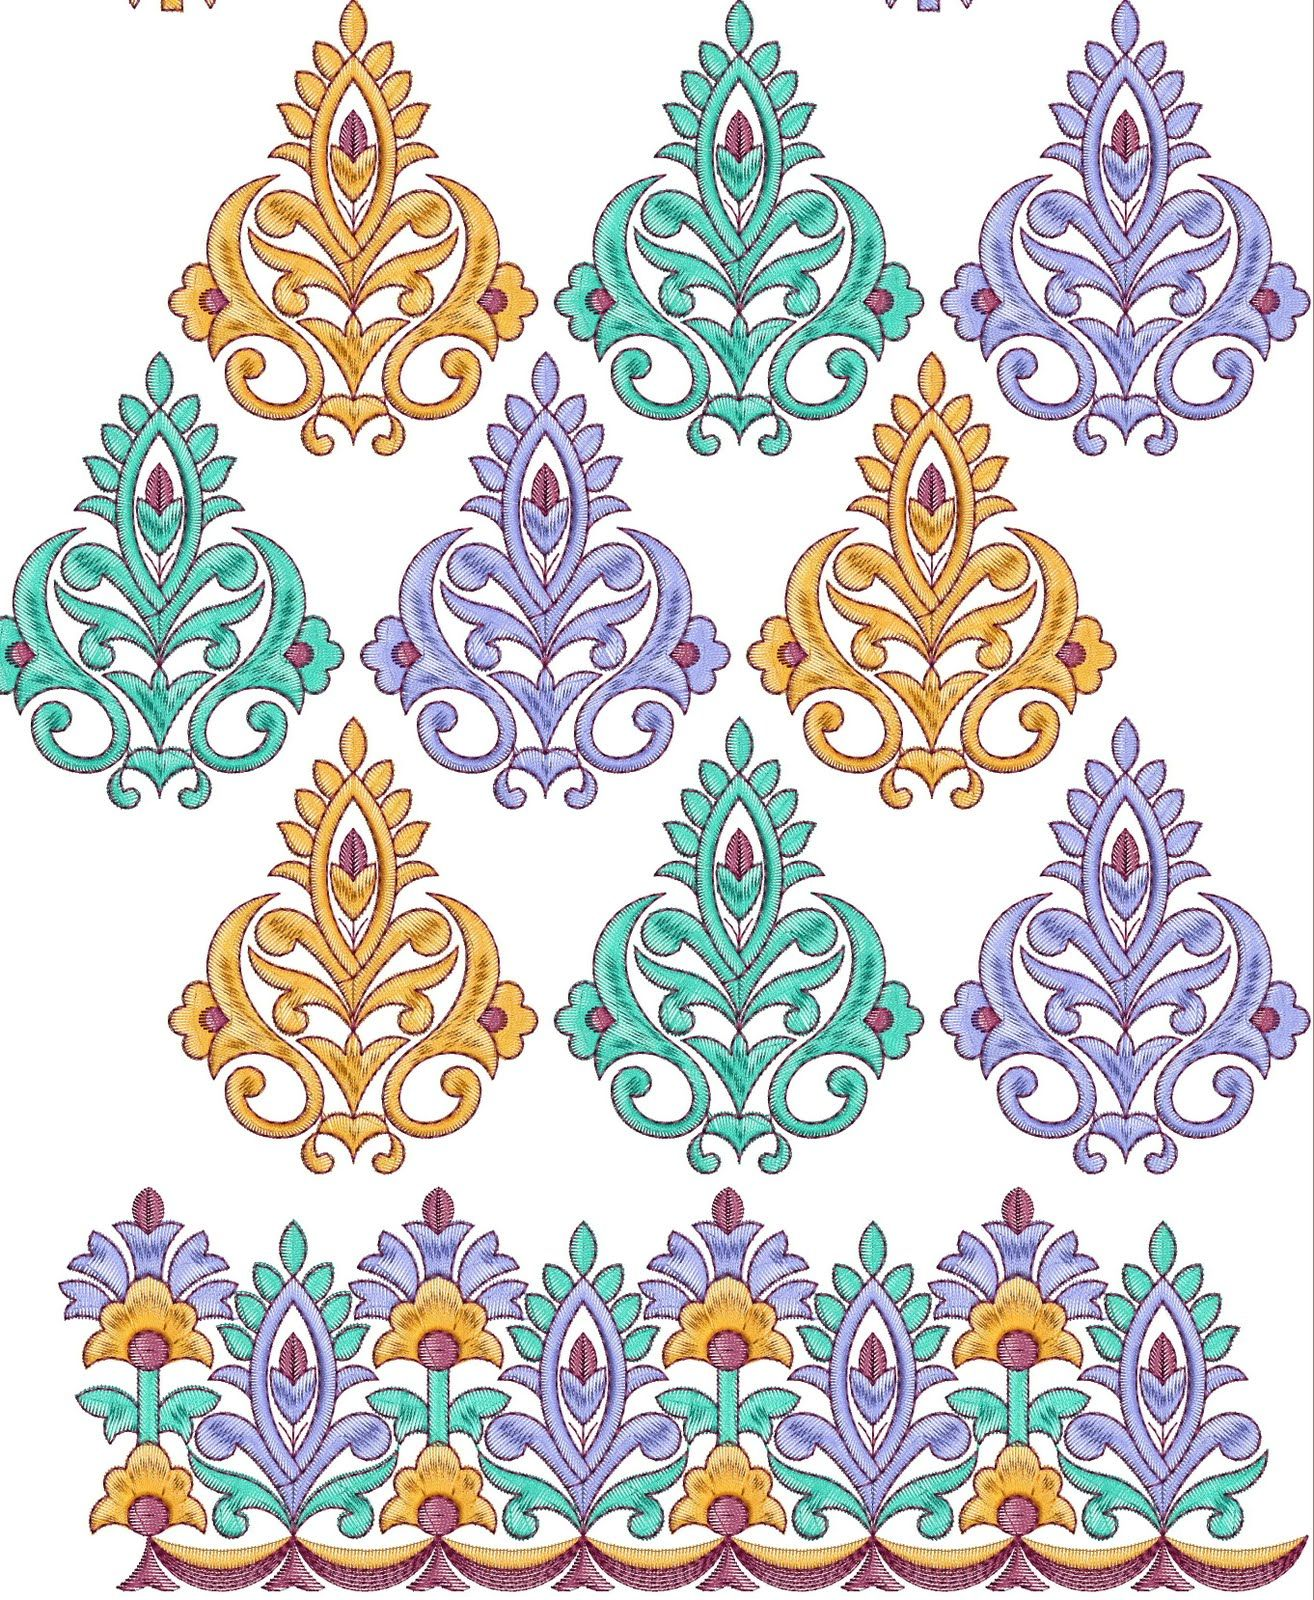 Free design patterns all over border embroidery designs